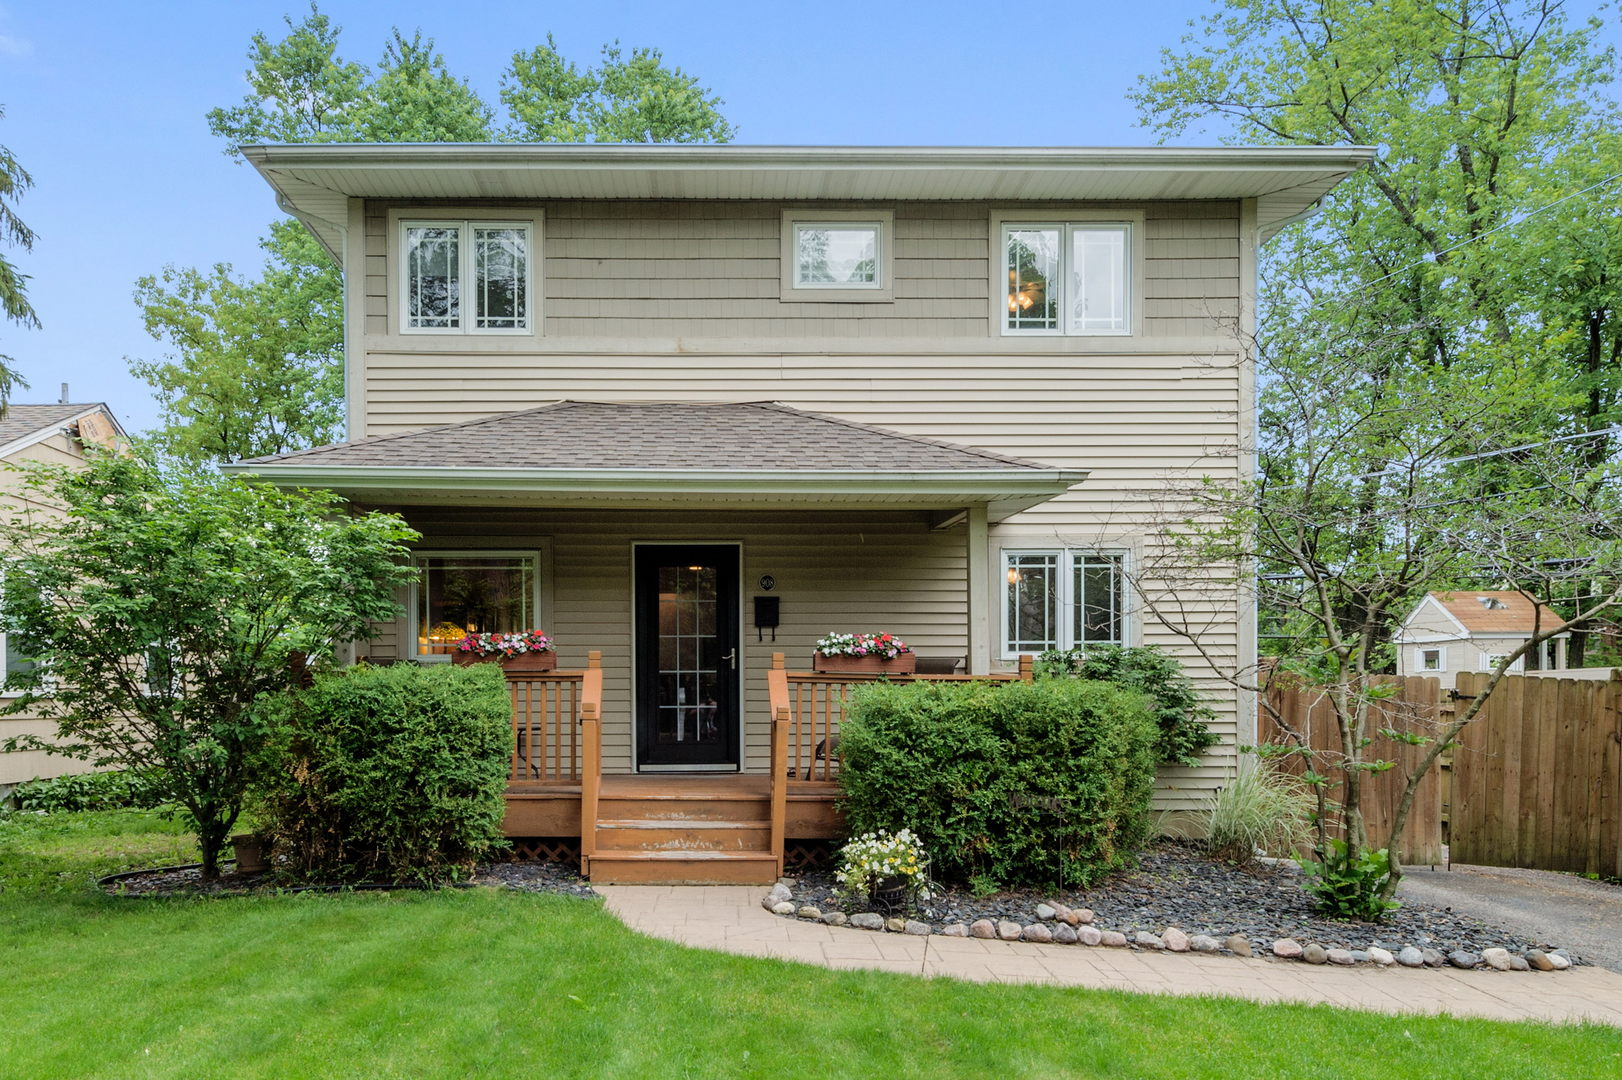 Photo for 908 Highland Court, DOWNERS GROVE, IL 60515 (MLS # 10450780)